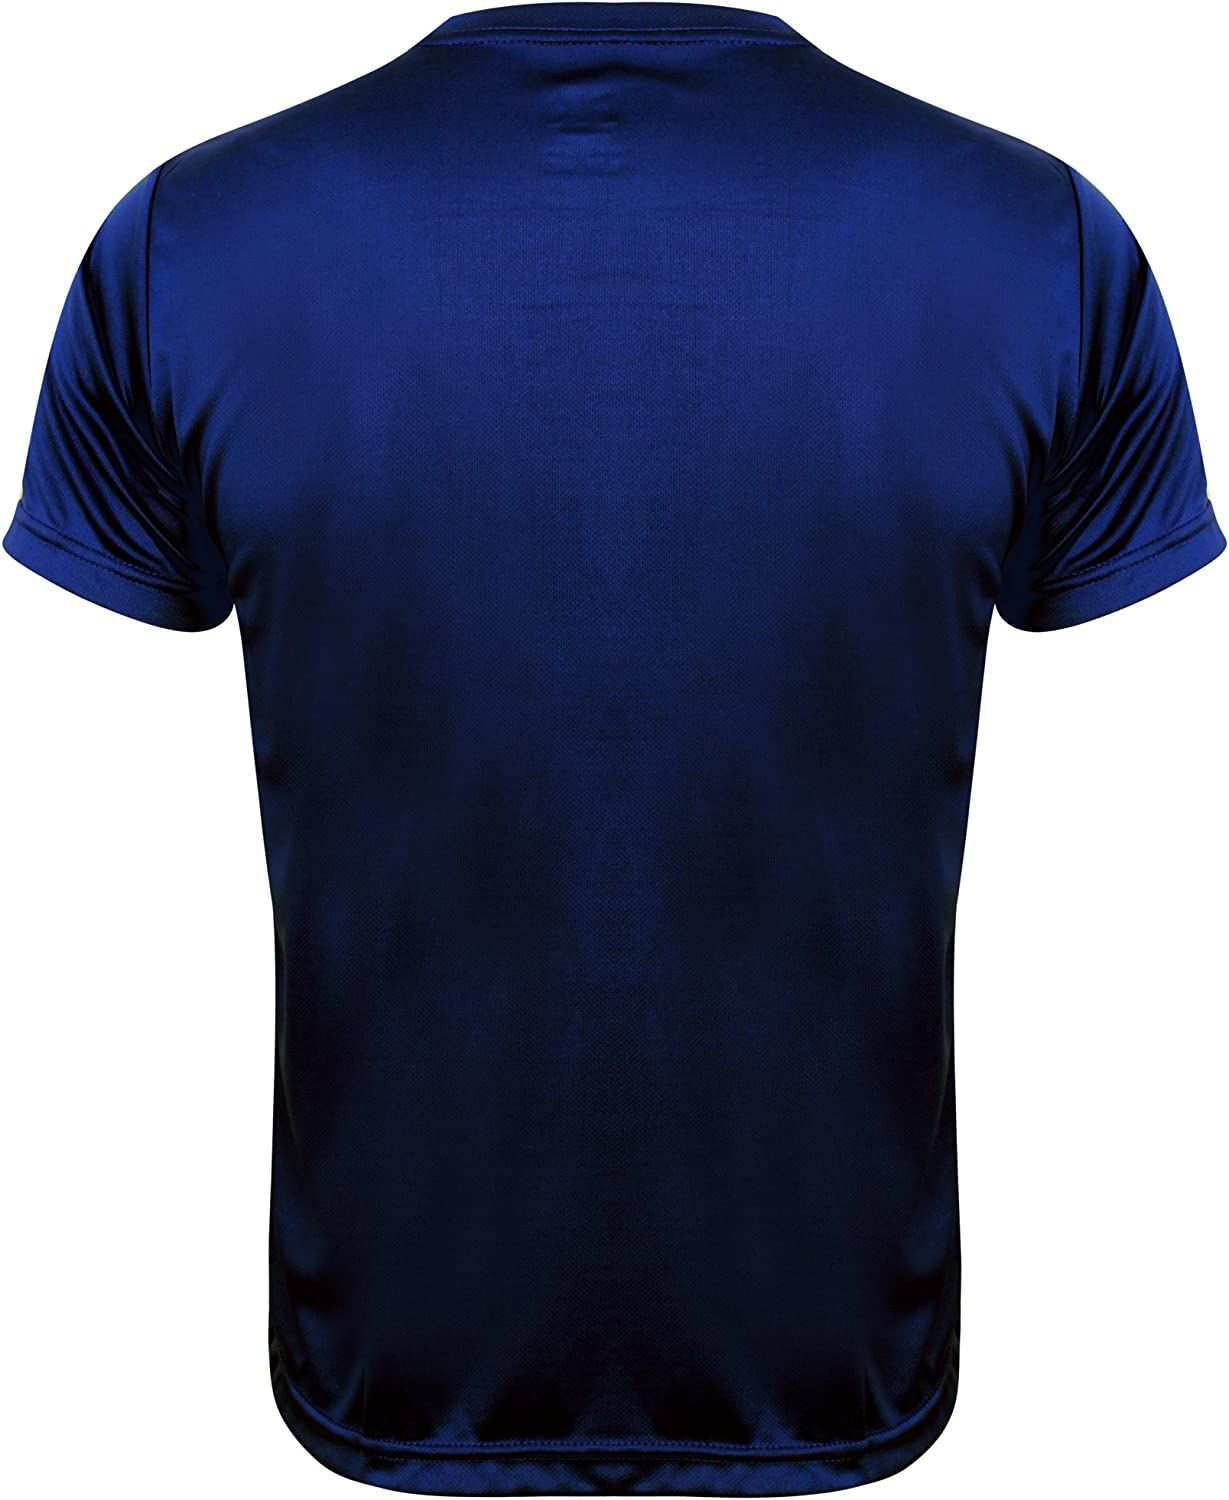 Activewear Shirts High Grade Quality AA Sportswear Mens T Shirt Gym Sports Fitness Active Wear Running Performance Top Tee Leisure Wear in Outdoor Activities Our Tees Fit All Needs